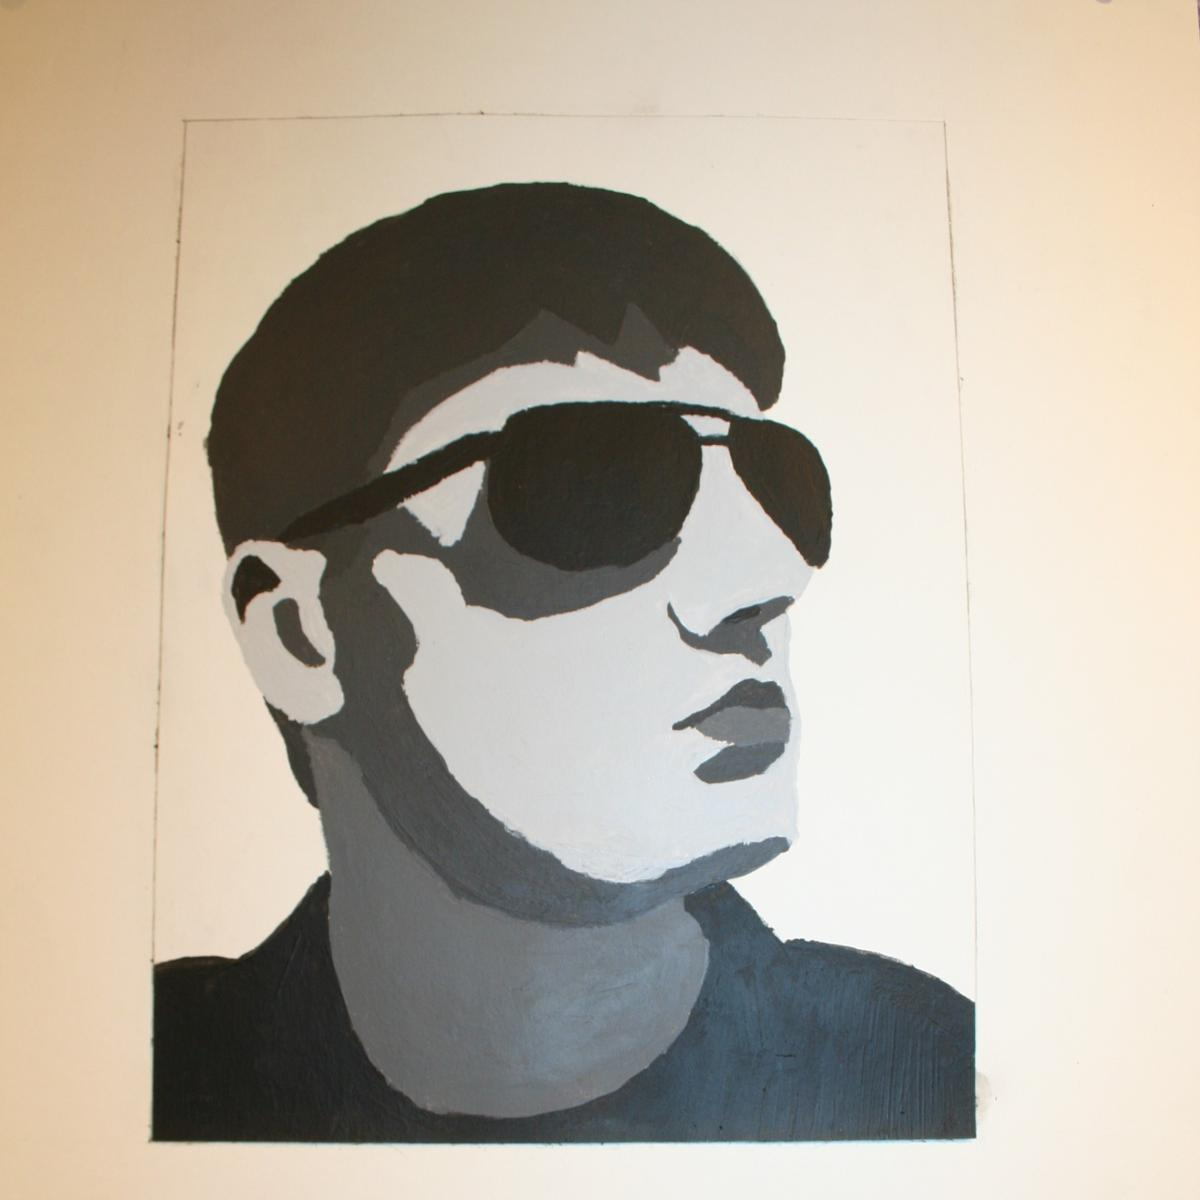 Image of a man wearing sunglasses